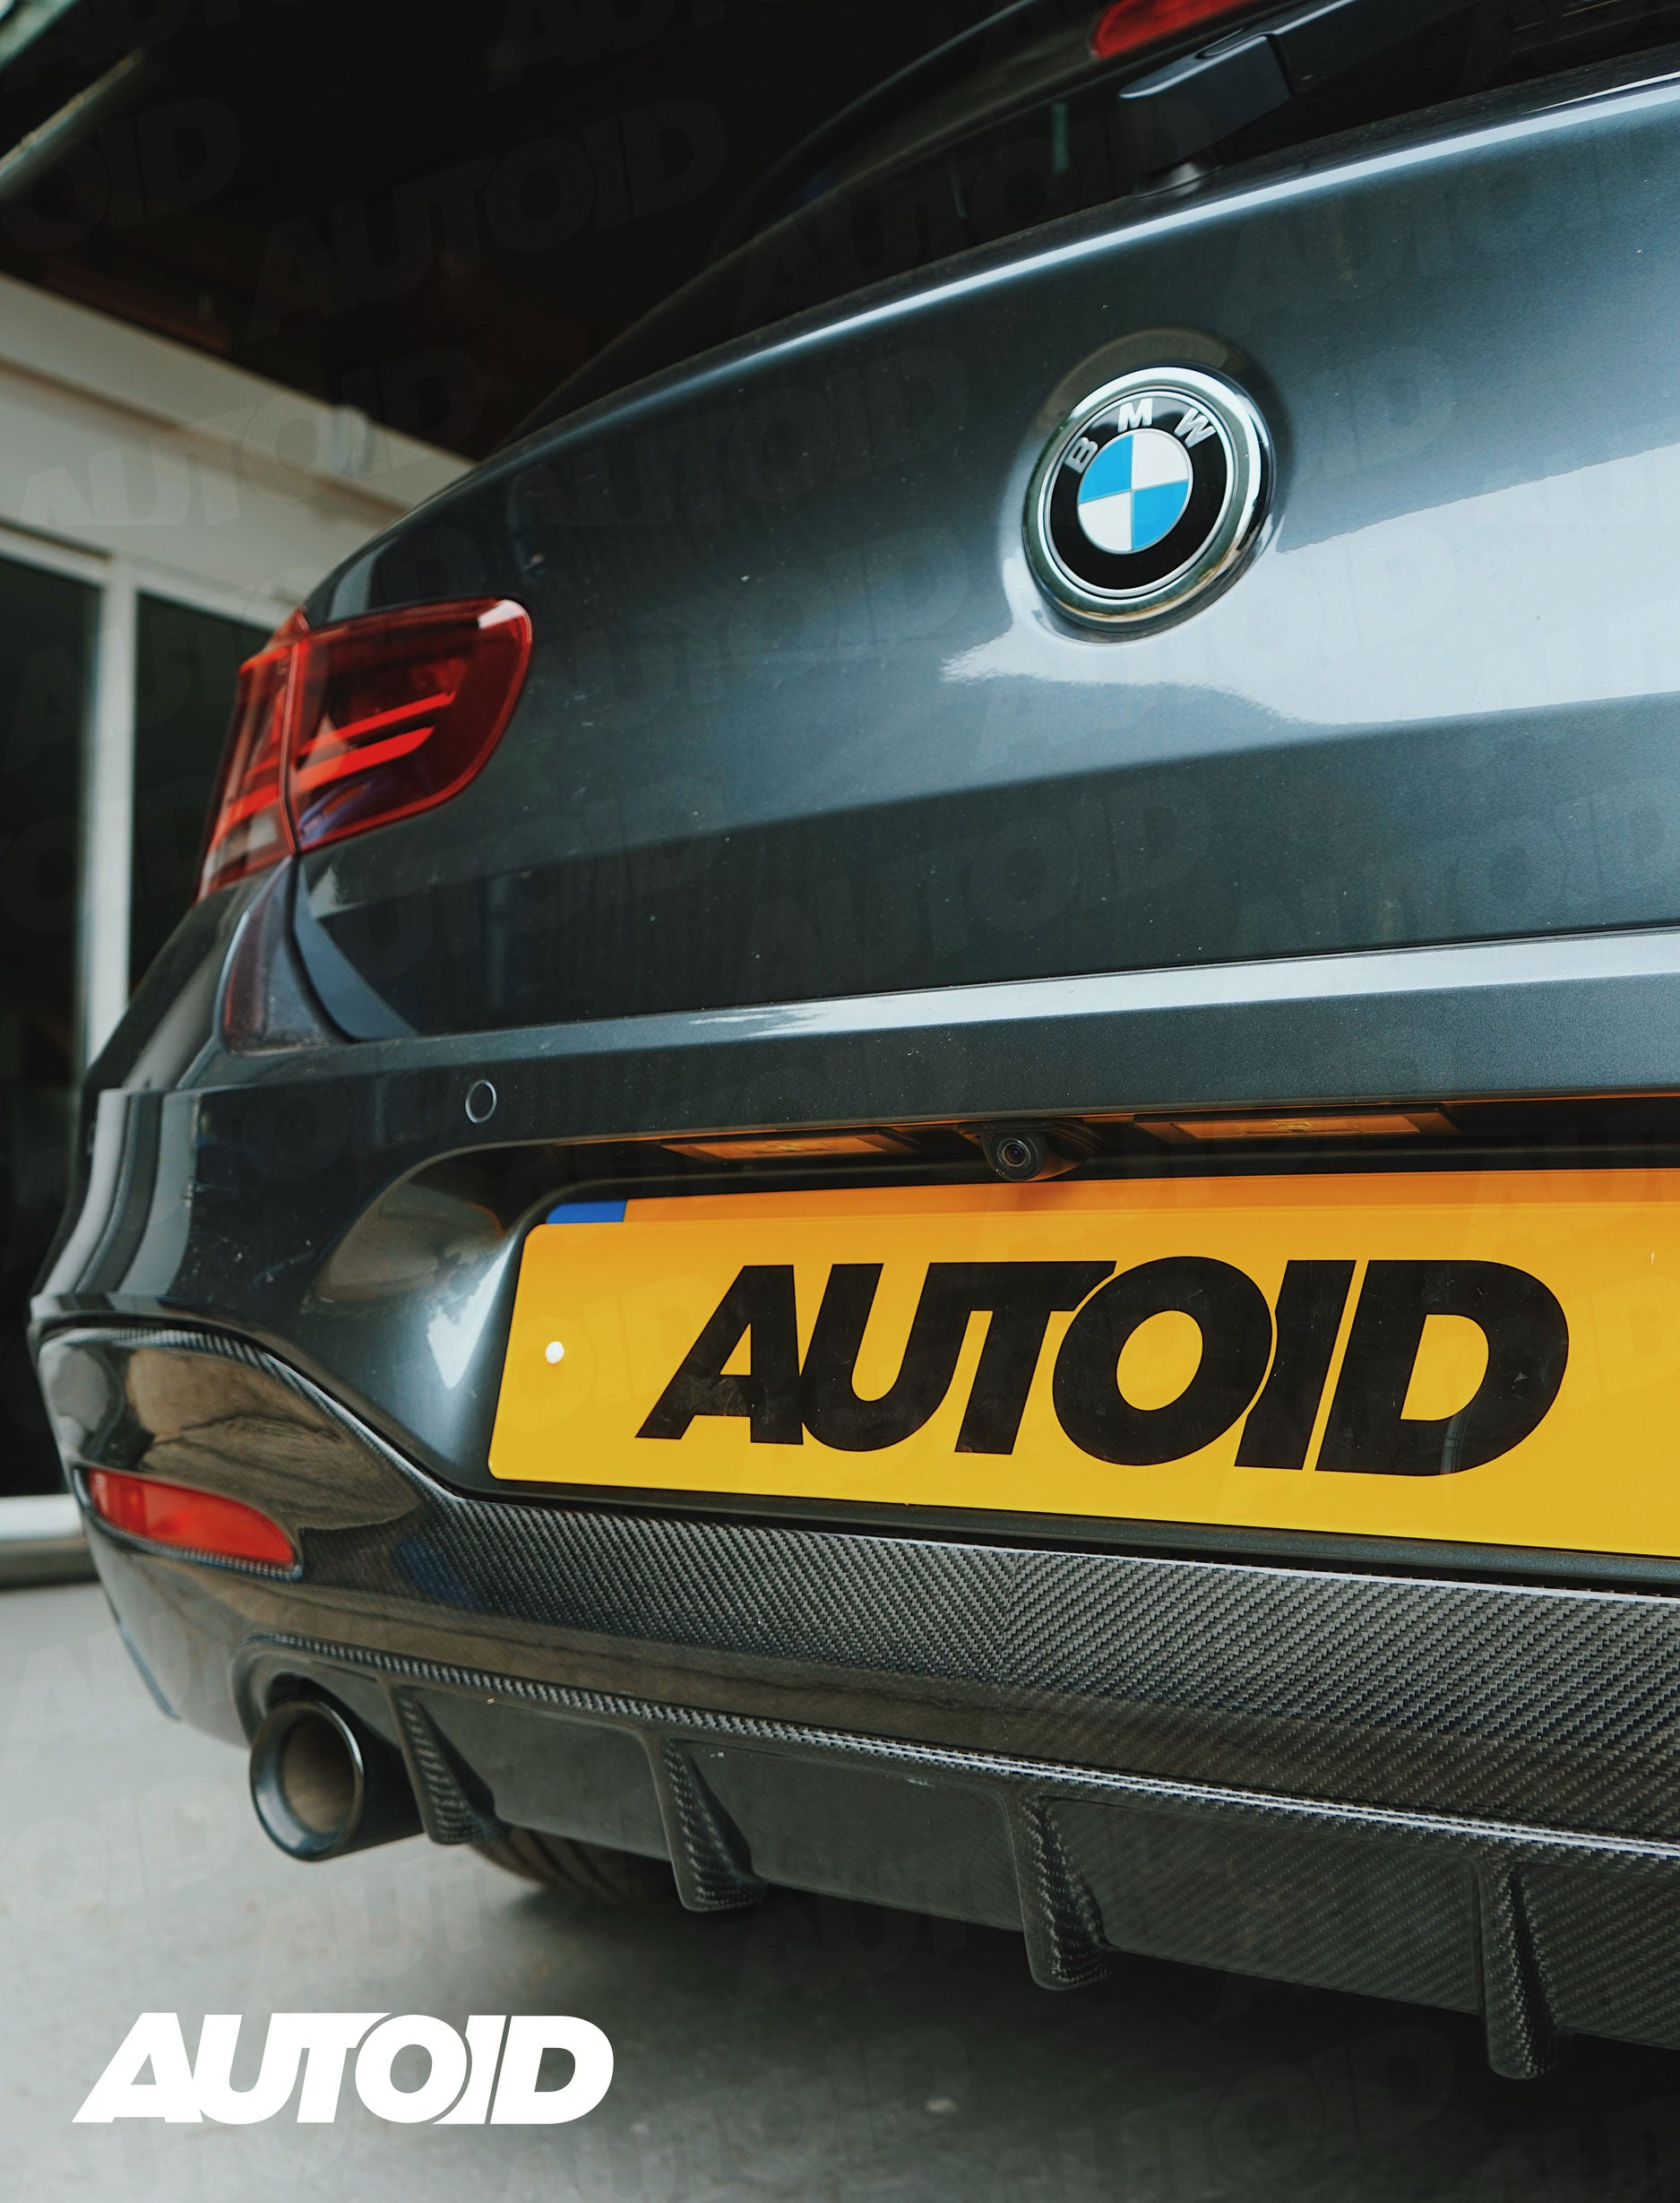 AUTOID Carbon Fibre Performance Rear Diffuser for BMW M140i/M135i LCI _ Detail